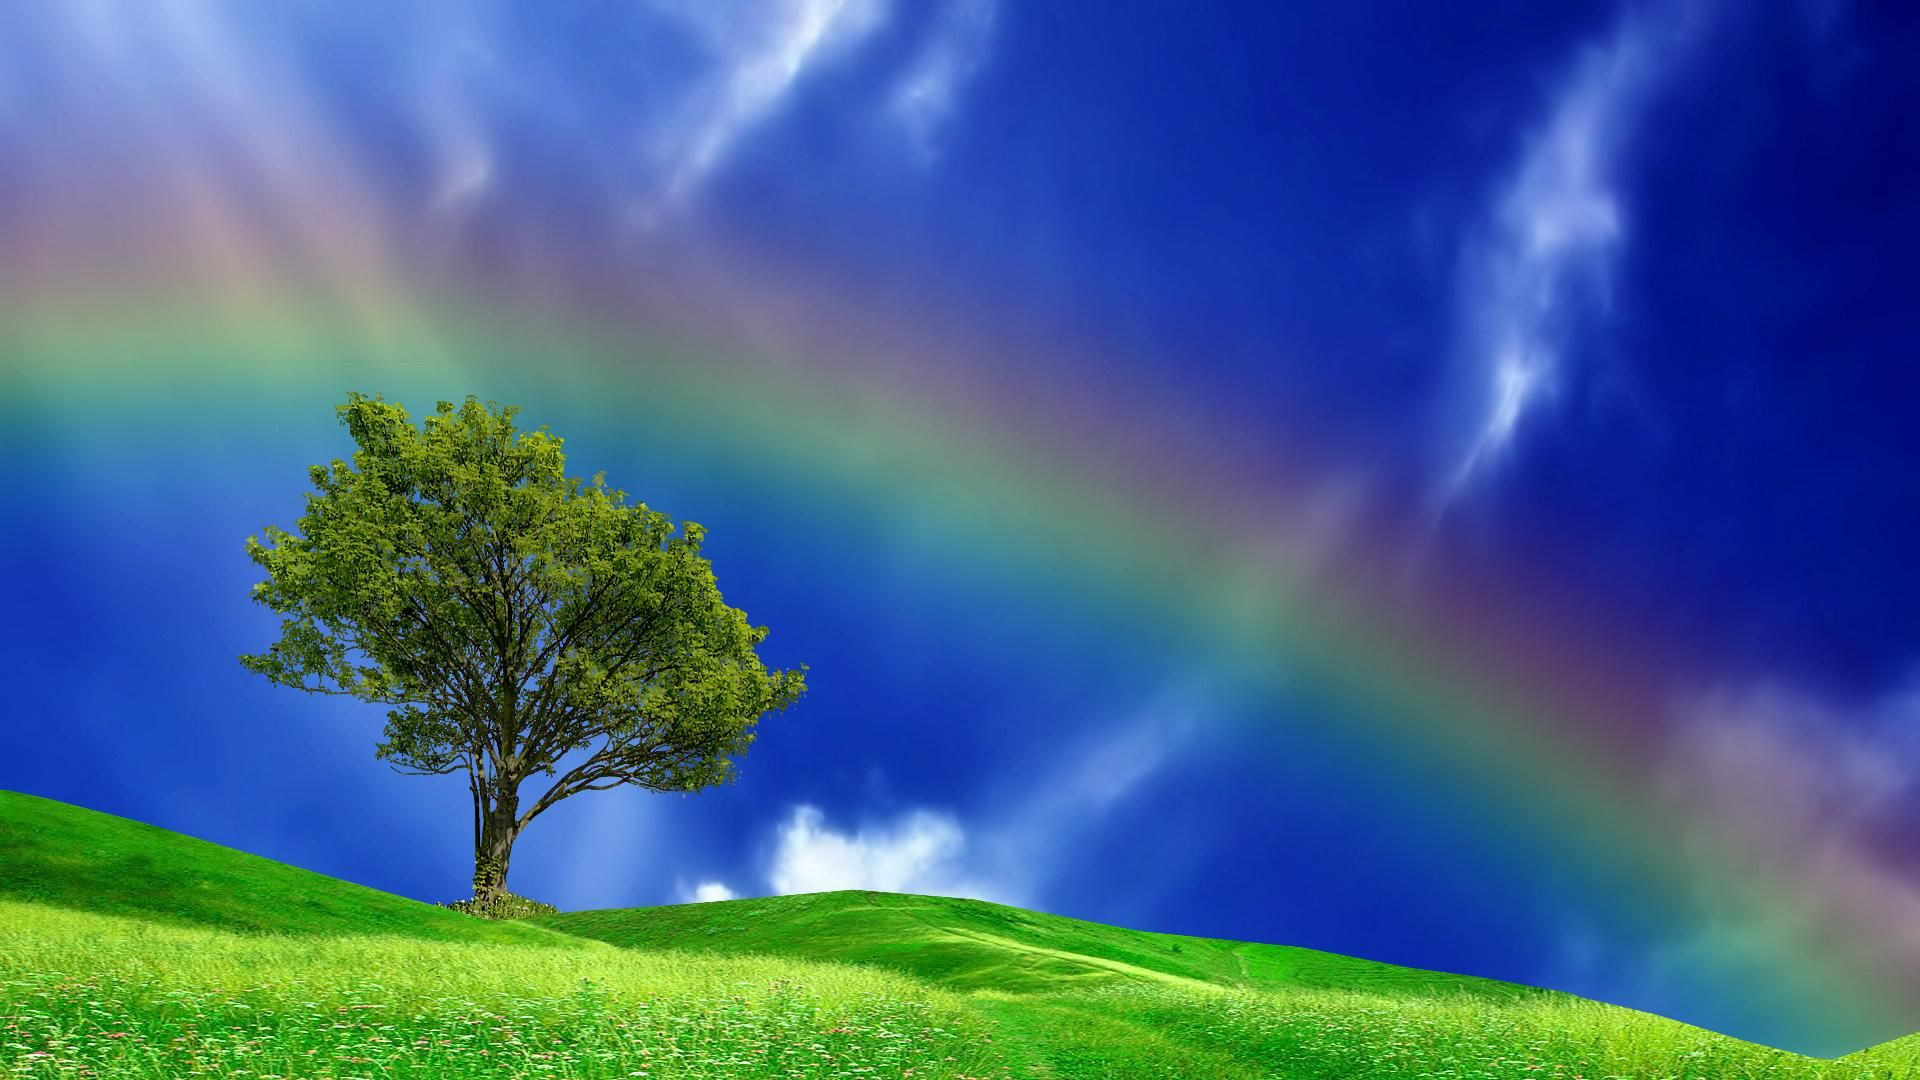 Pin by rose marie on somewhere over the rainbow pinterest rainbows field wallpaper summer sky rainbows beautiful beautiful fields trees cats voltagebd Gallery